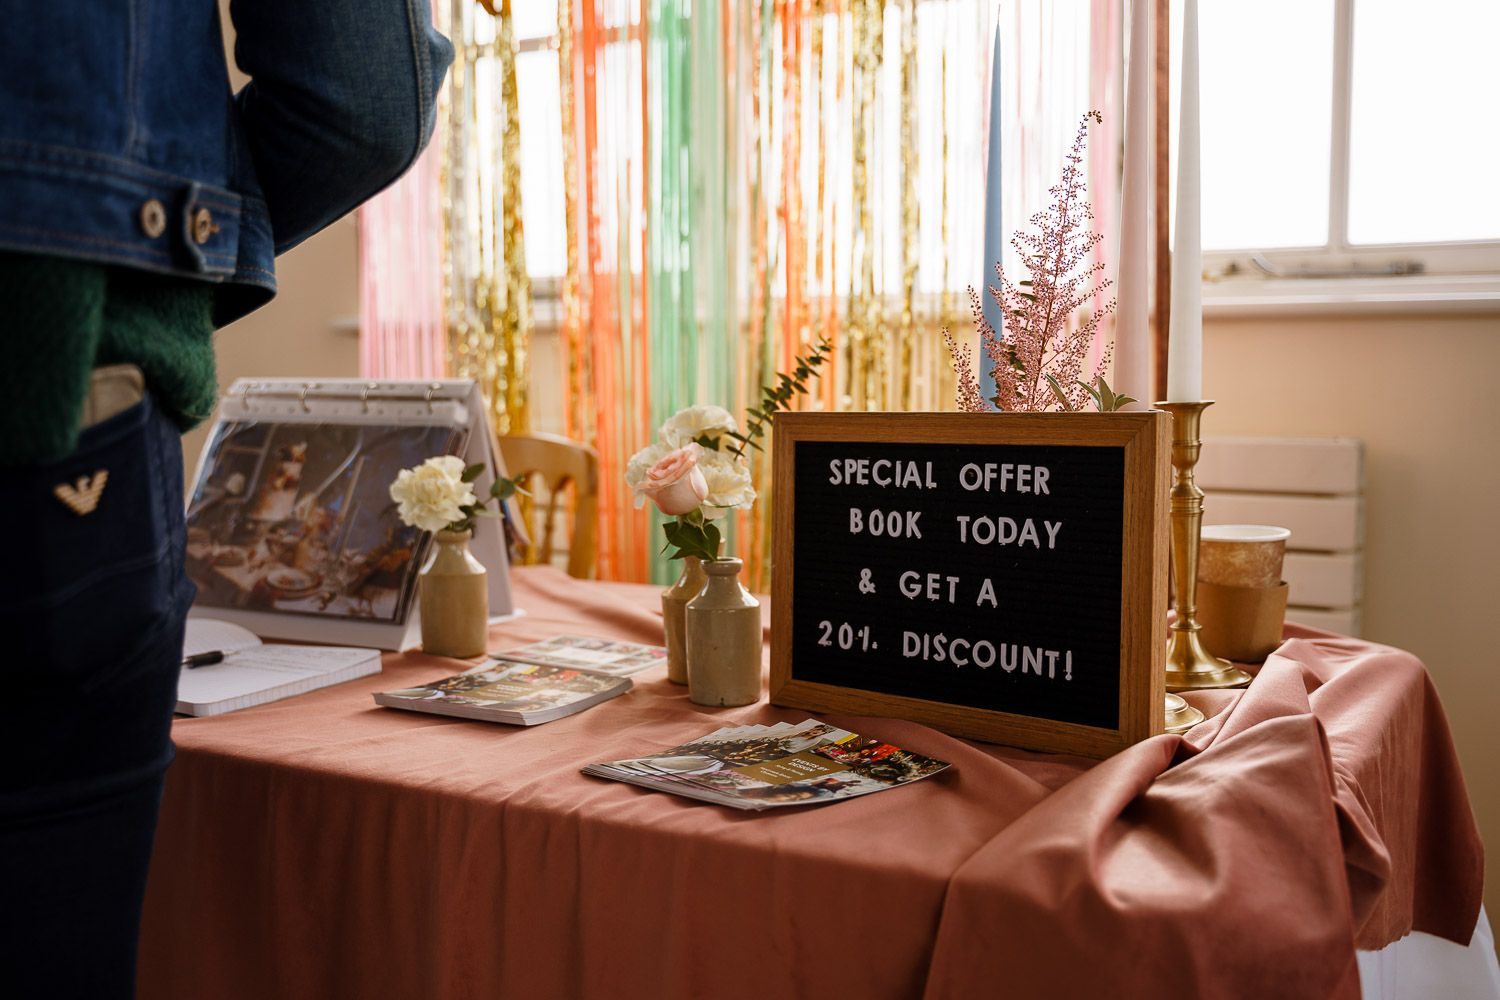 Special offers at wedding fairs can help you save the pennies.